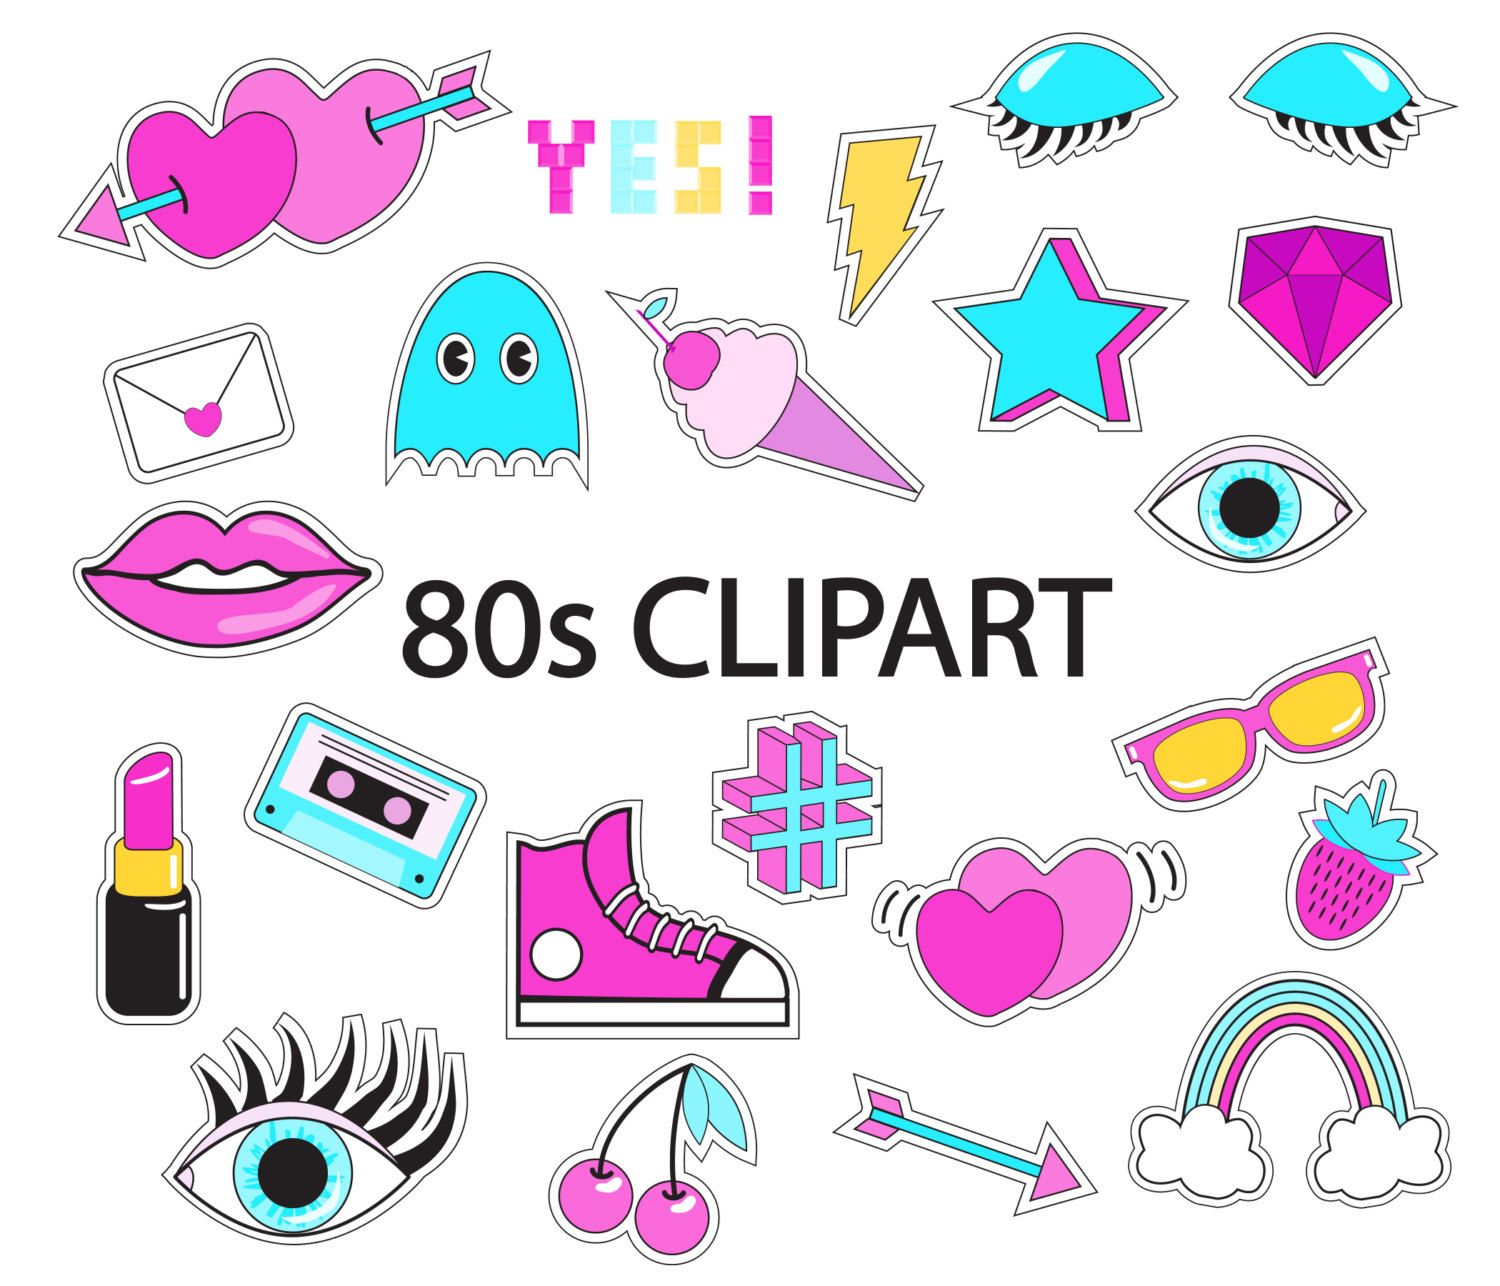 90s clipart free svg freeuse stock 80s Clipart Overlay, 80s Vector 90s, 80\'s Clipart 90s Clip Art ... svg freeuse stock